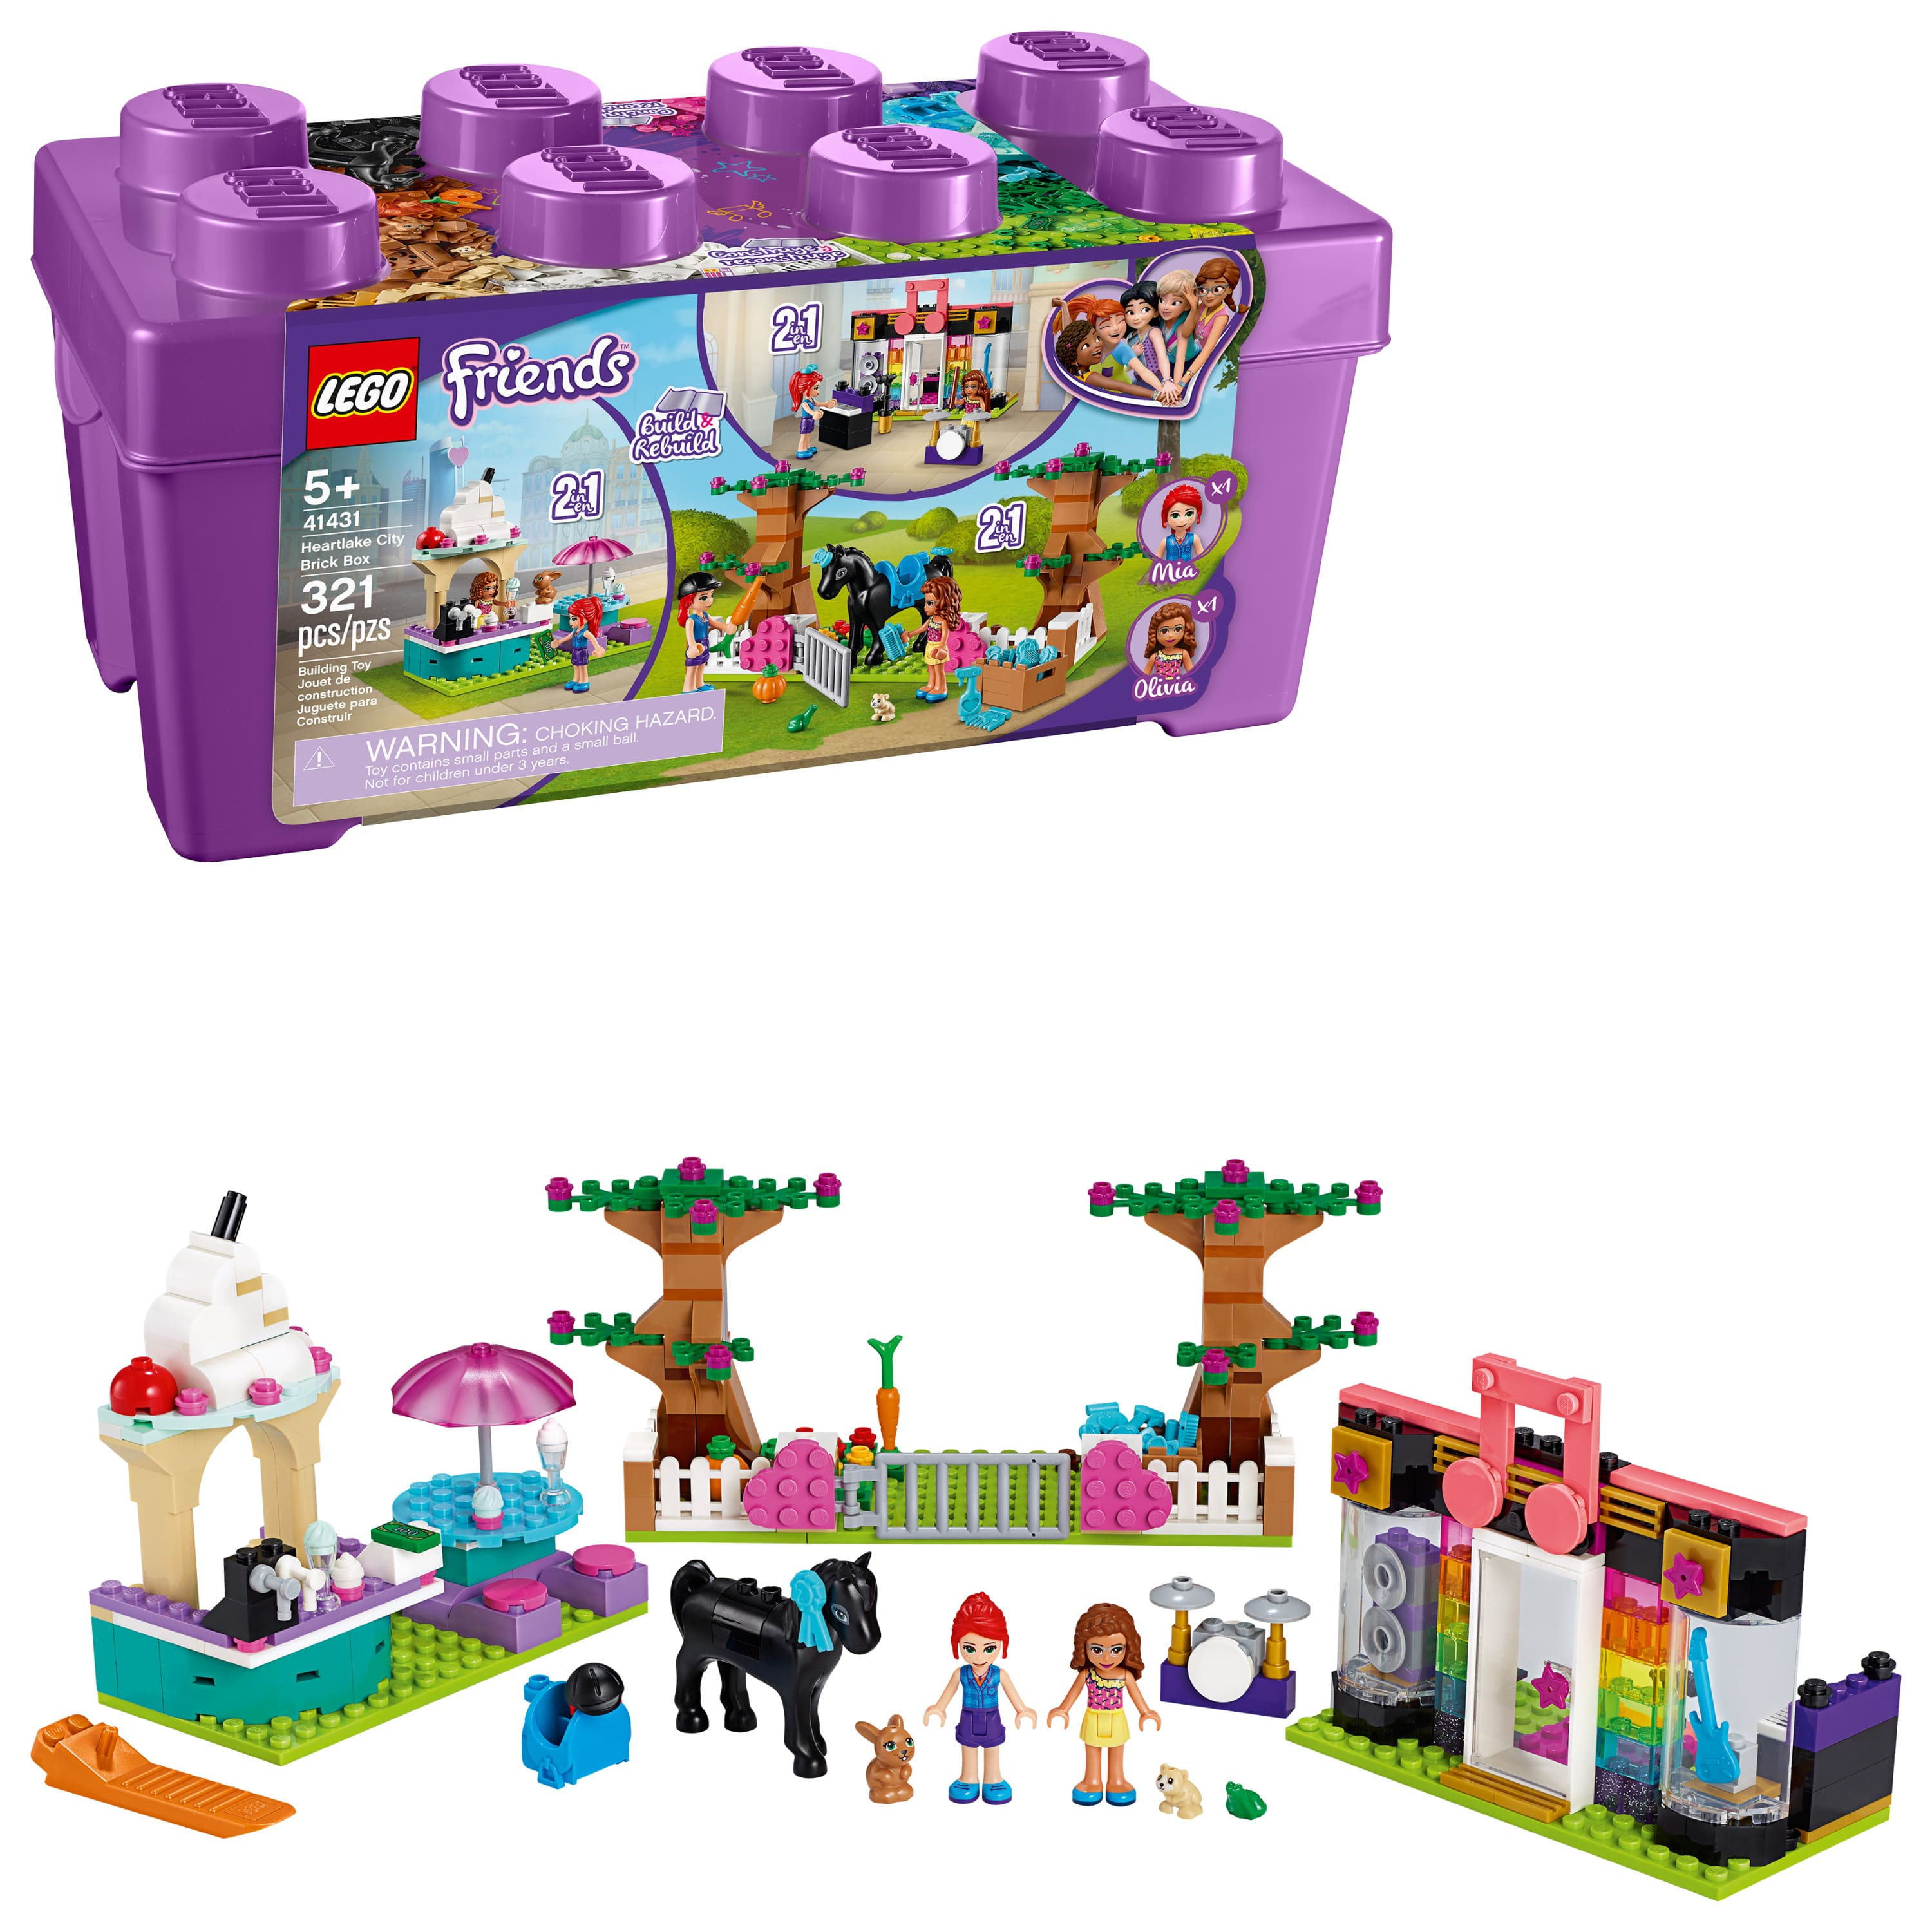 321 Pieces LEGO Friends Heartlake City Brick Box 41431 Building Kit $29.84 + Free shipping on $35+